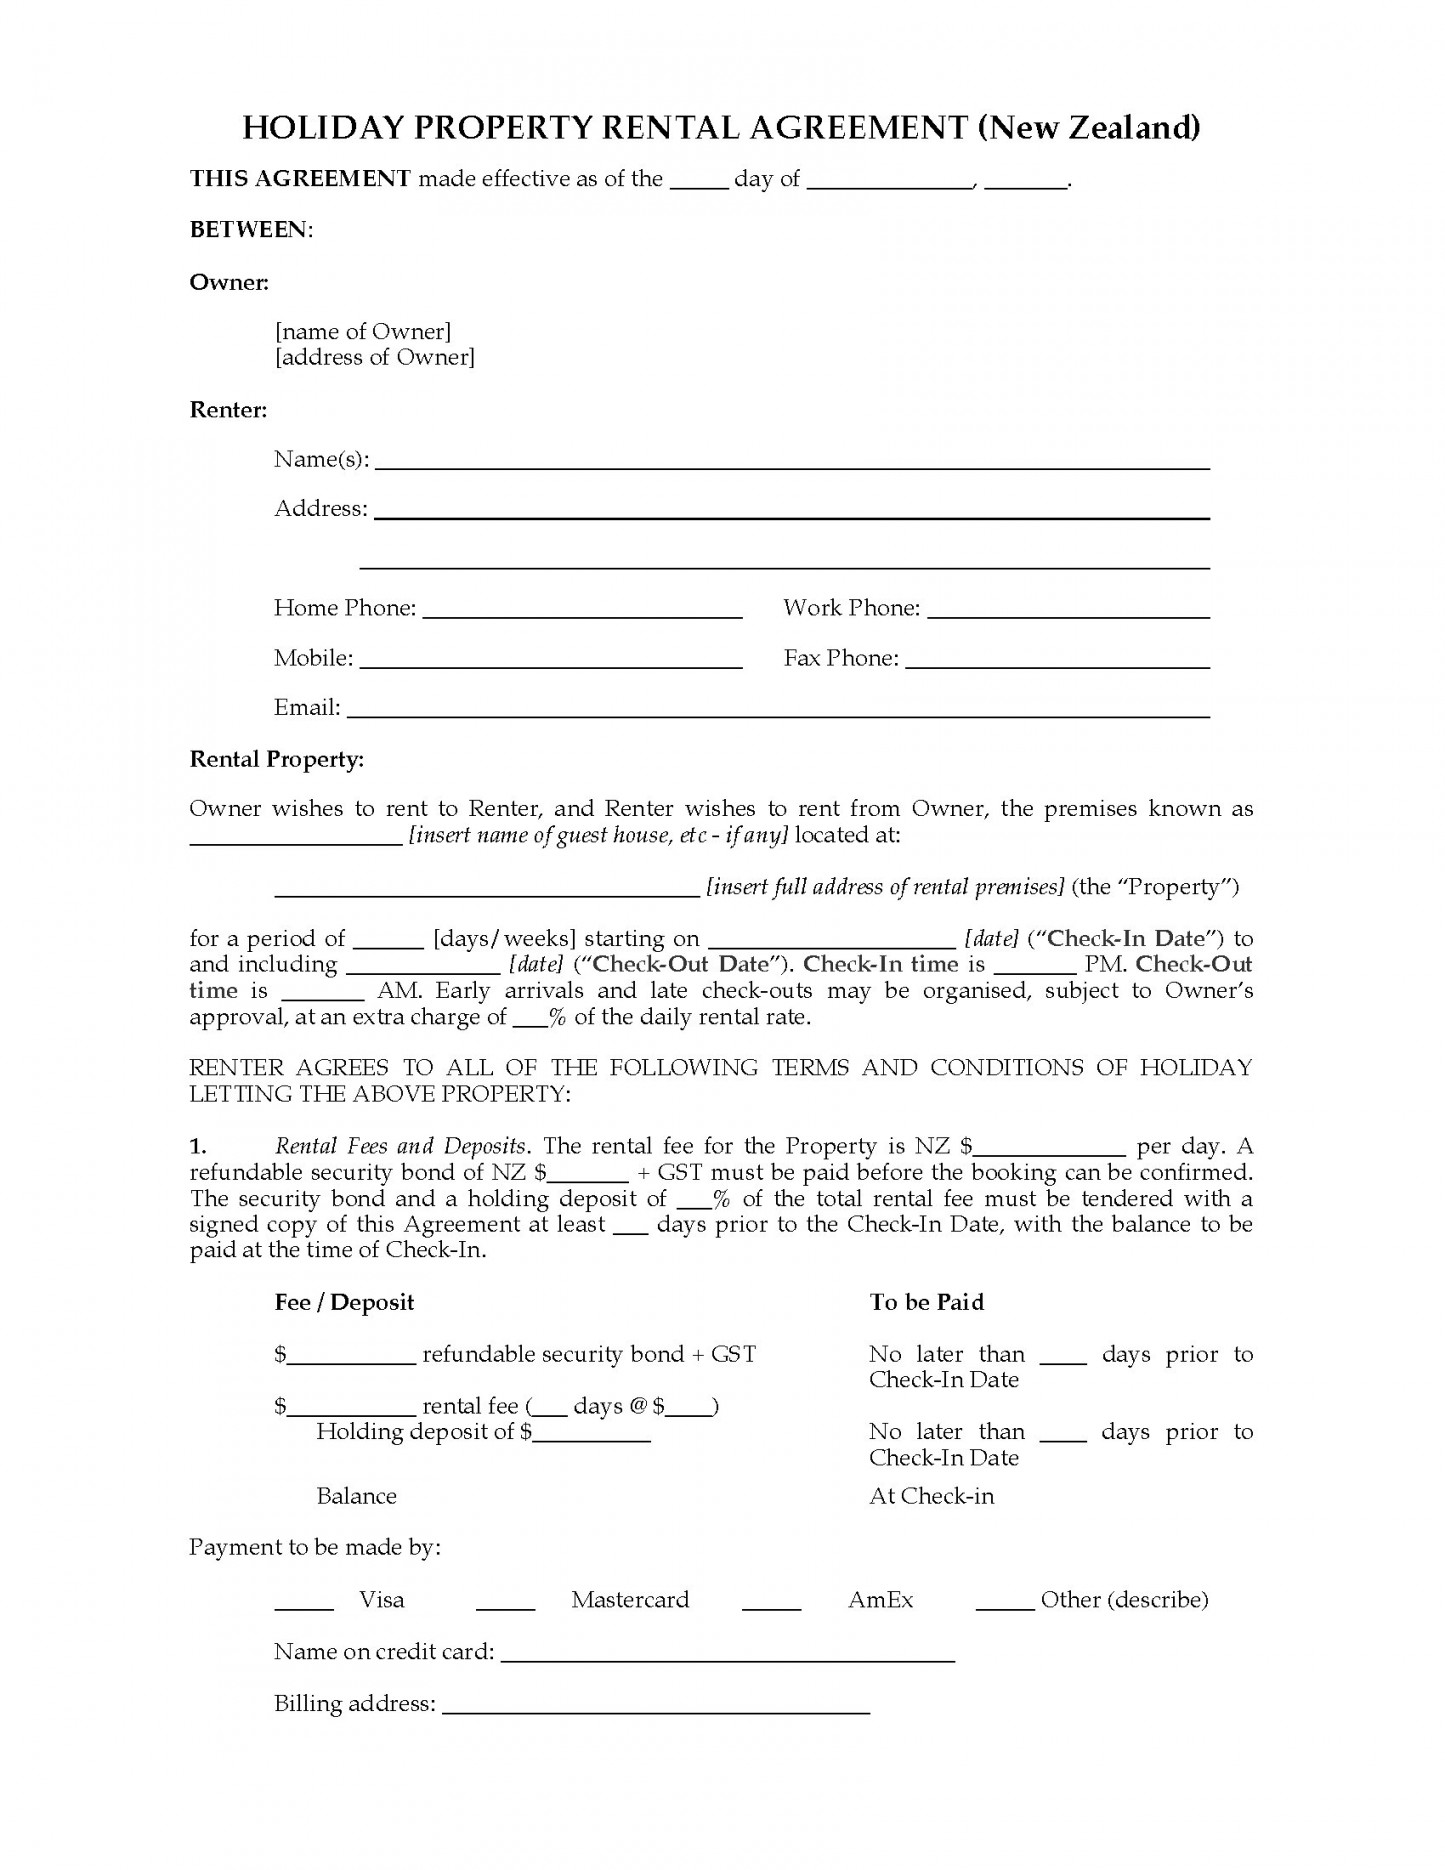 Rental Agreement Template Nz Pic New Zealand Holiday Property Rental Agreement Legal Forms And